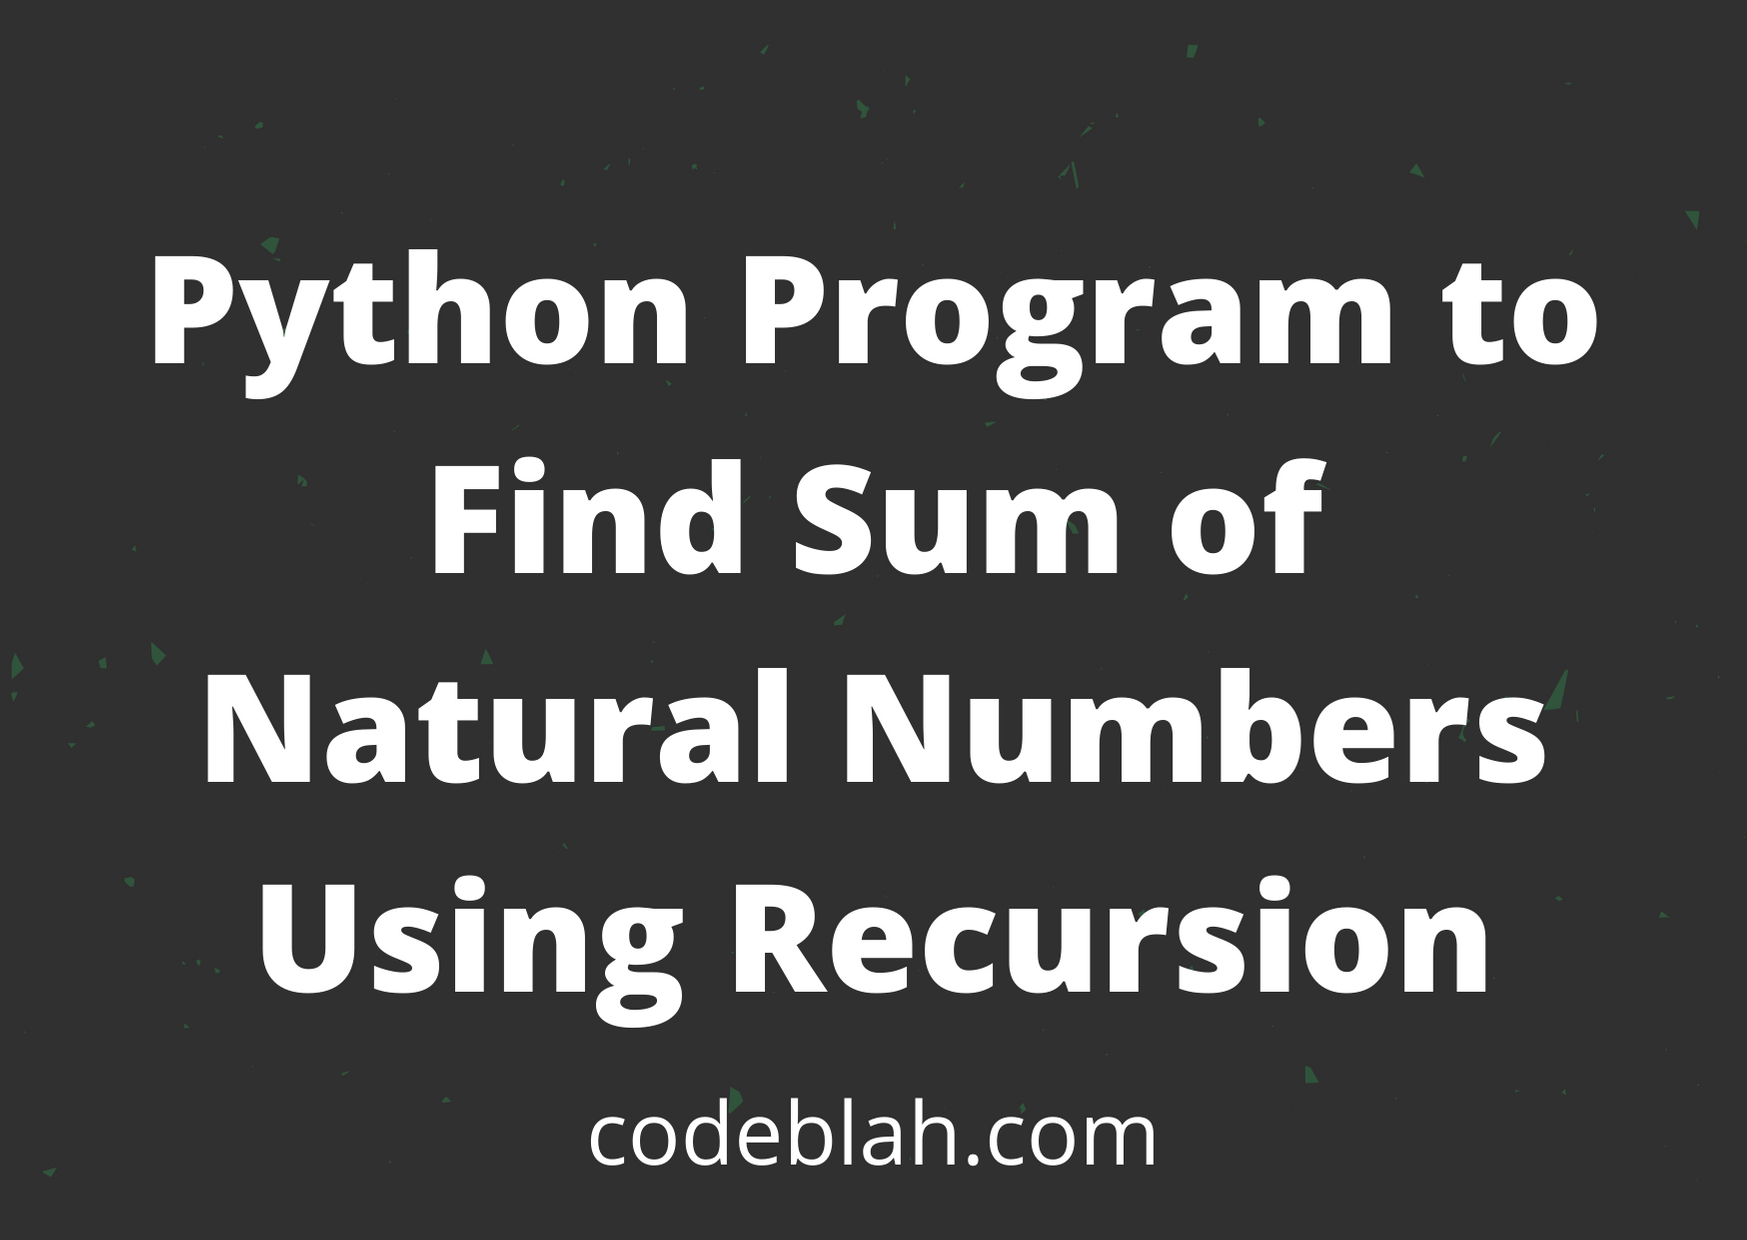 Python Program to Find Sum of Natural Numbers Using Recursion